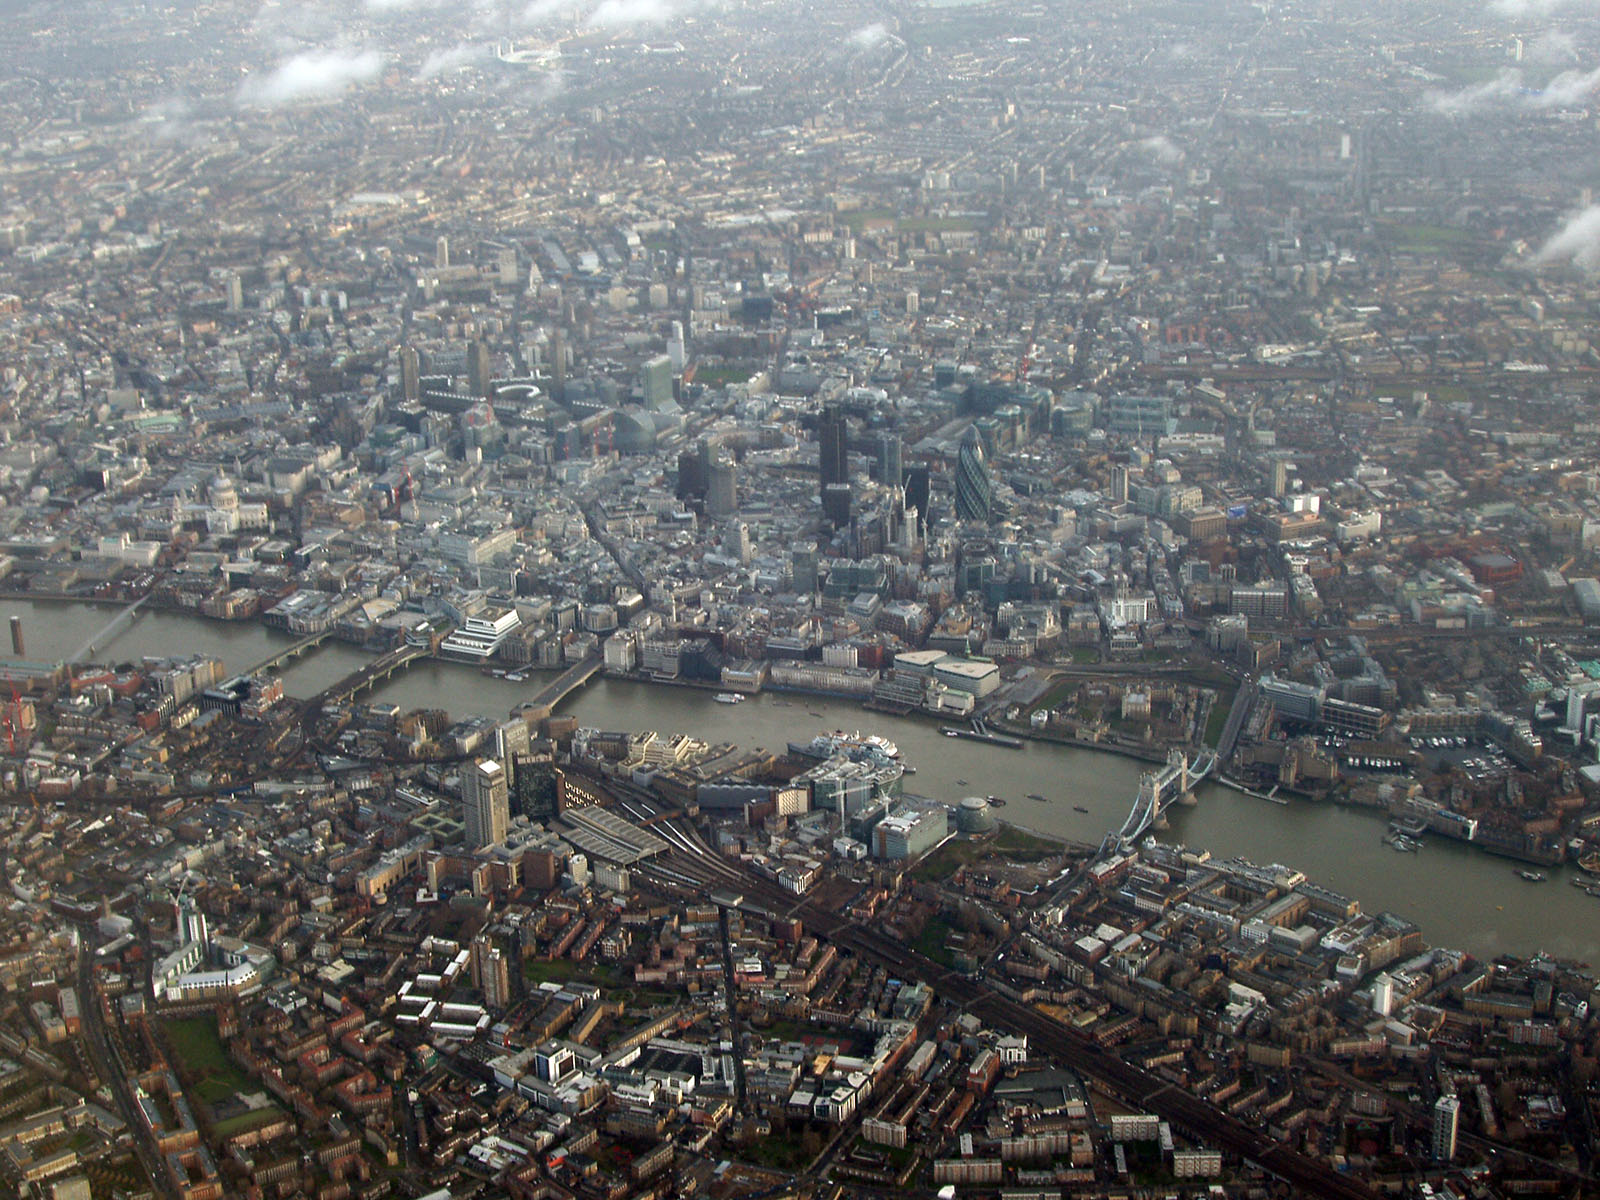 Aerial photo of Southwark, London showing Tower Bridge and the Tower of London, London Bridge, The Gherkin and many more famous landmarks.